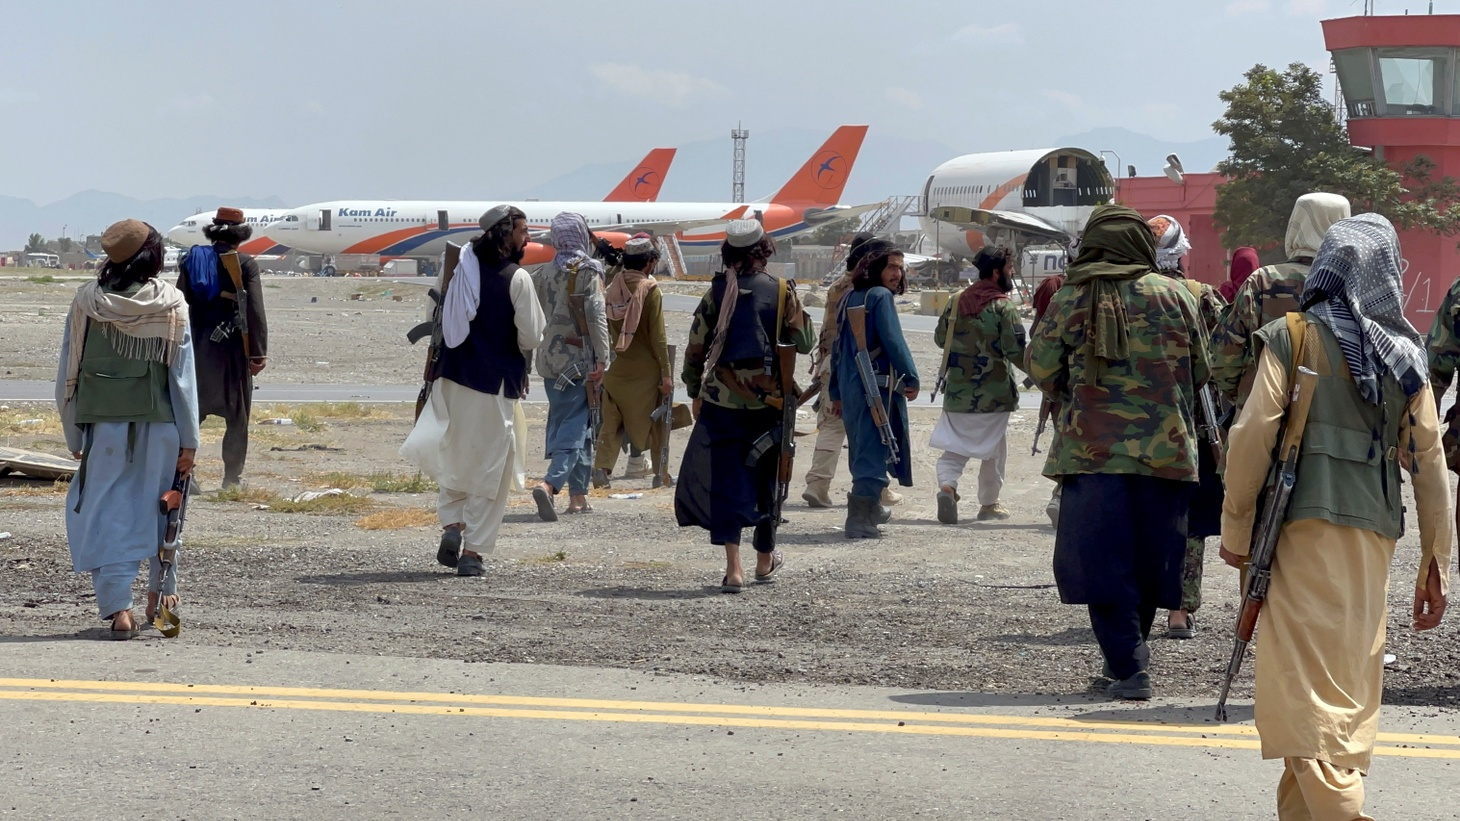 Taliban forces patrol at a runway a day after U.S troops withdrew from Hamid Karzai International Airport in Kabul, Afghanistan August 31, 2021.